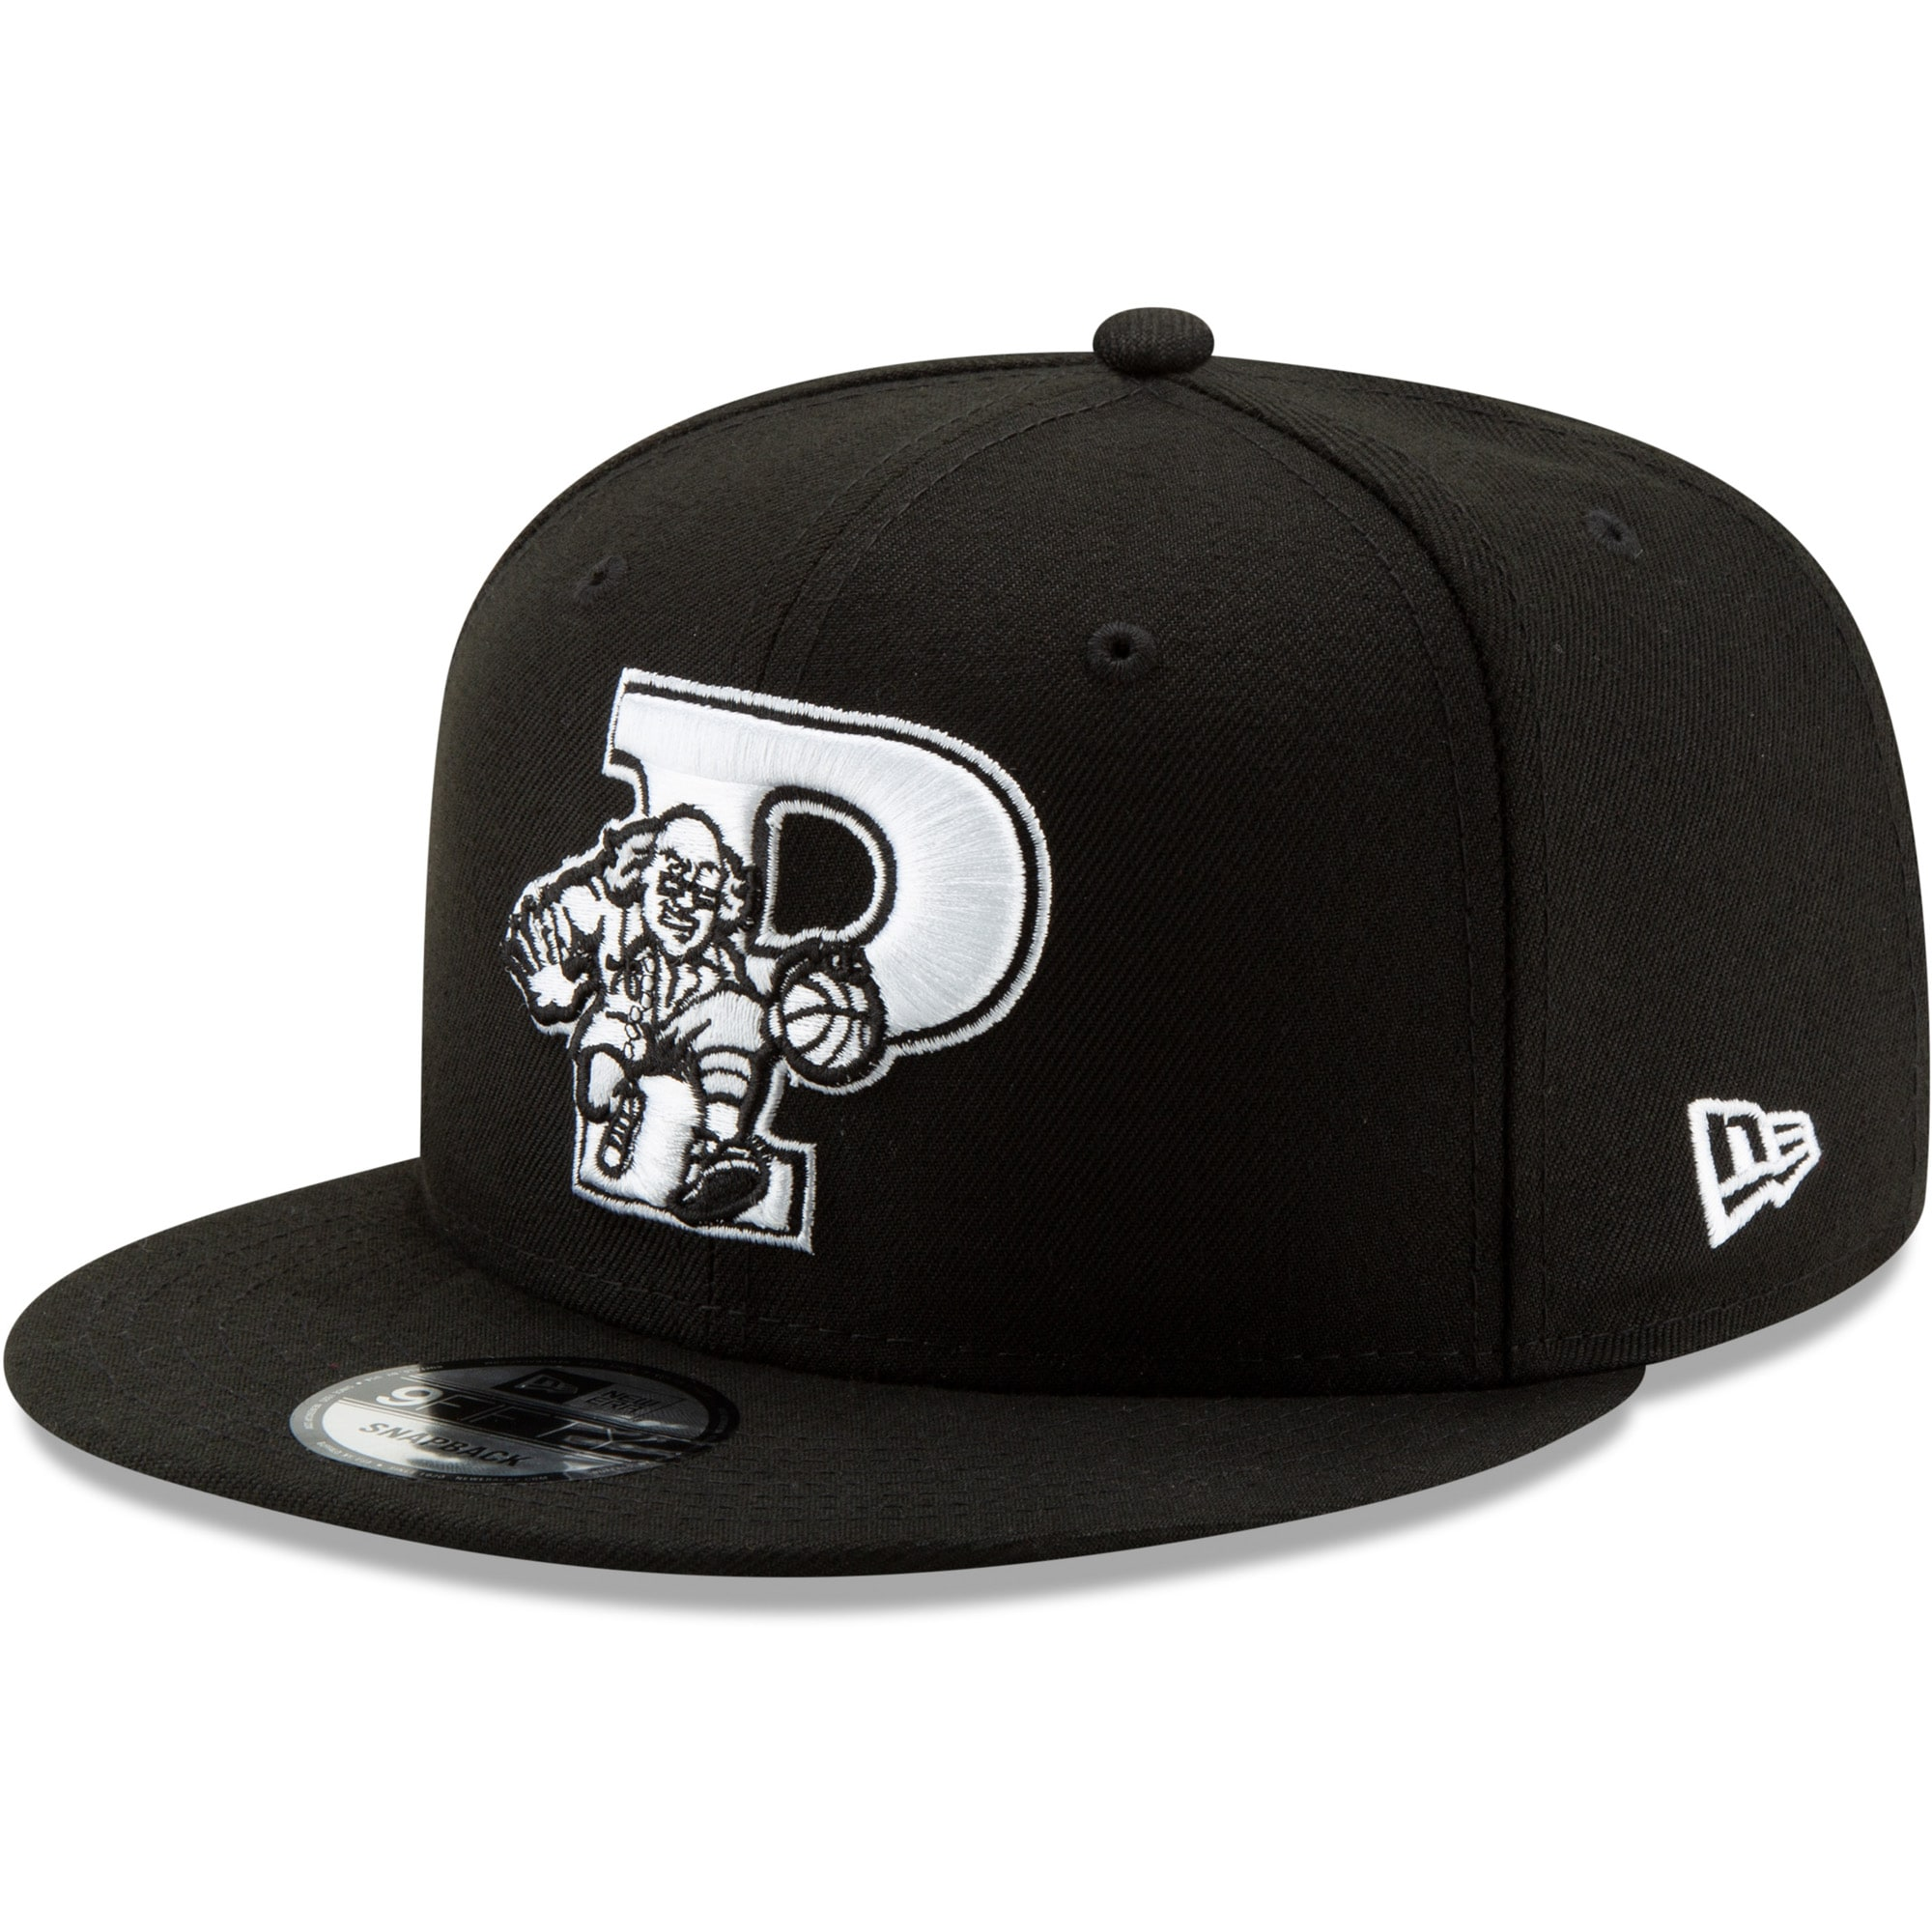 Philadelphia 76ers New Era Back Half Series 9FIFTY Adjustable Snapback Hat - Black